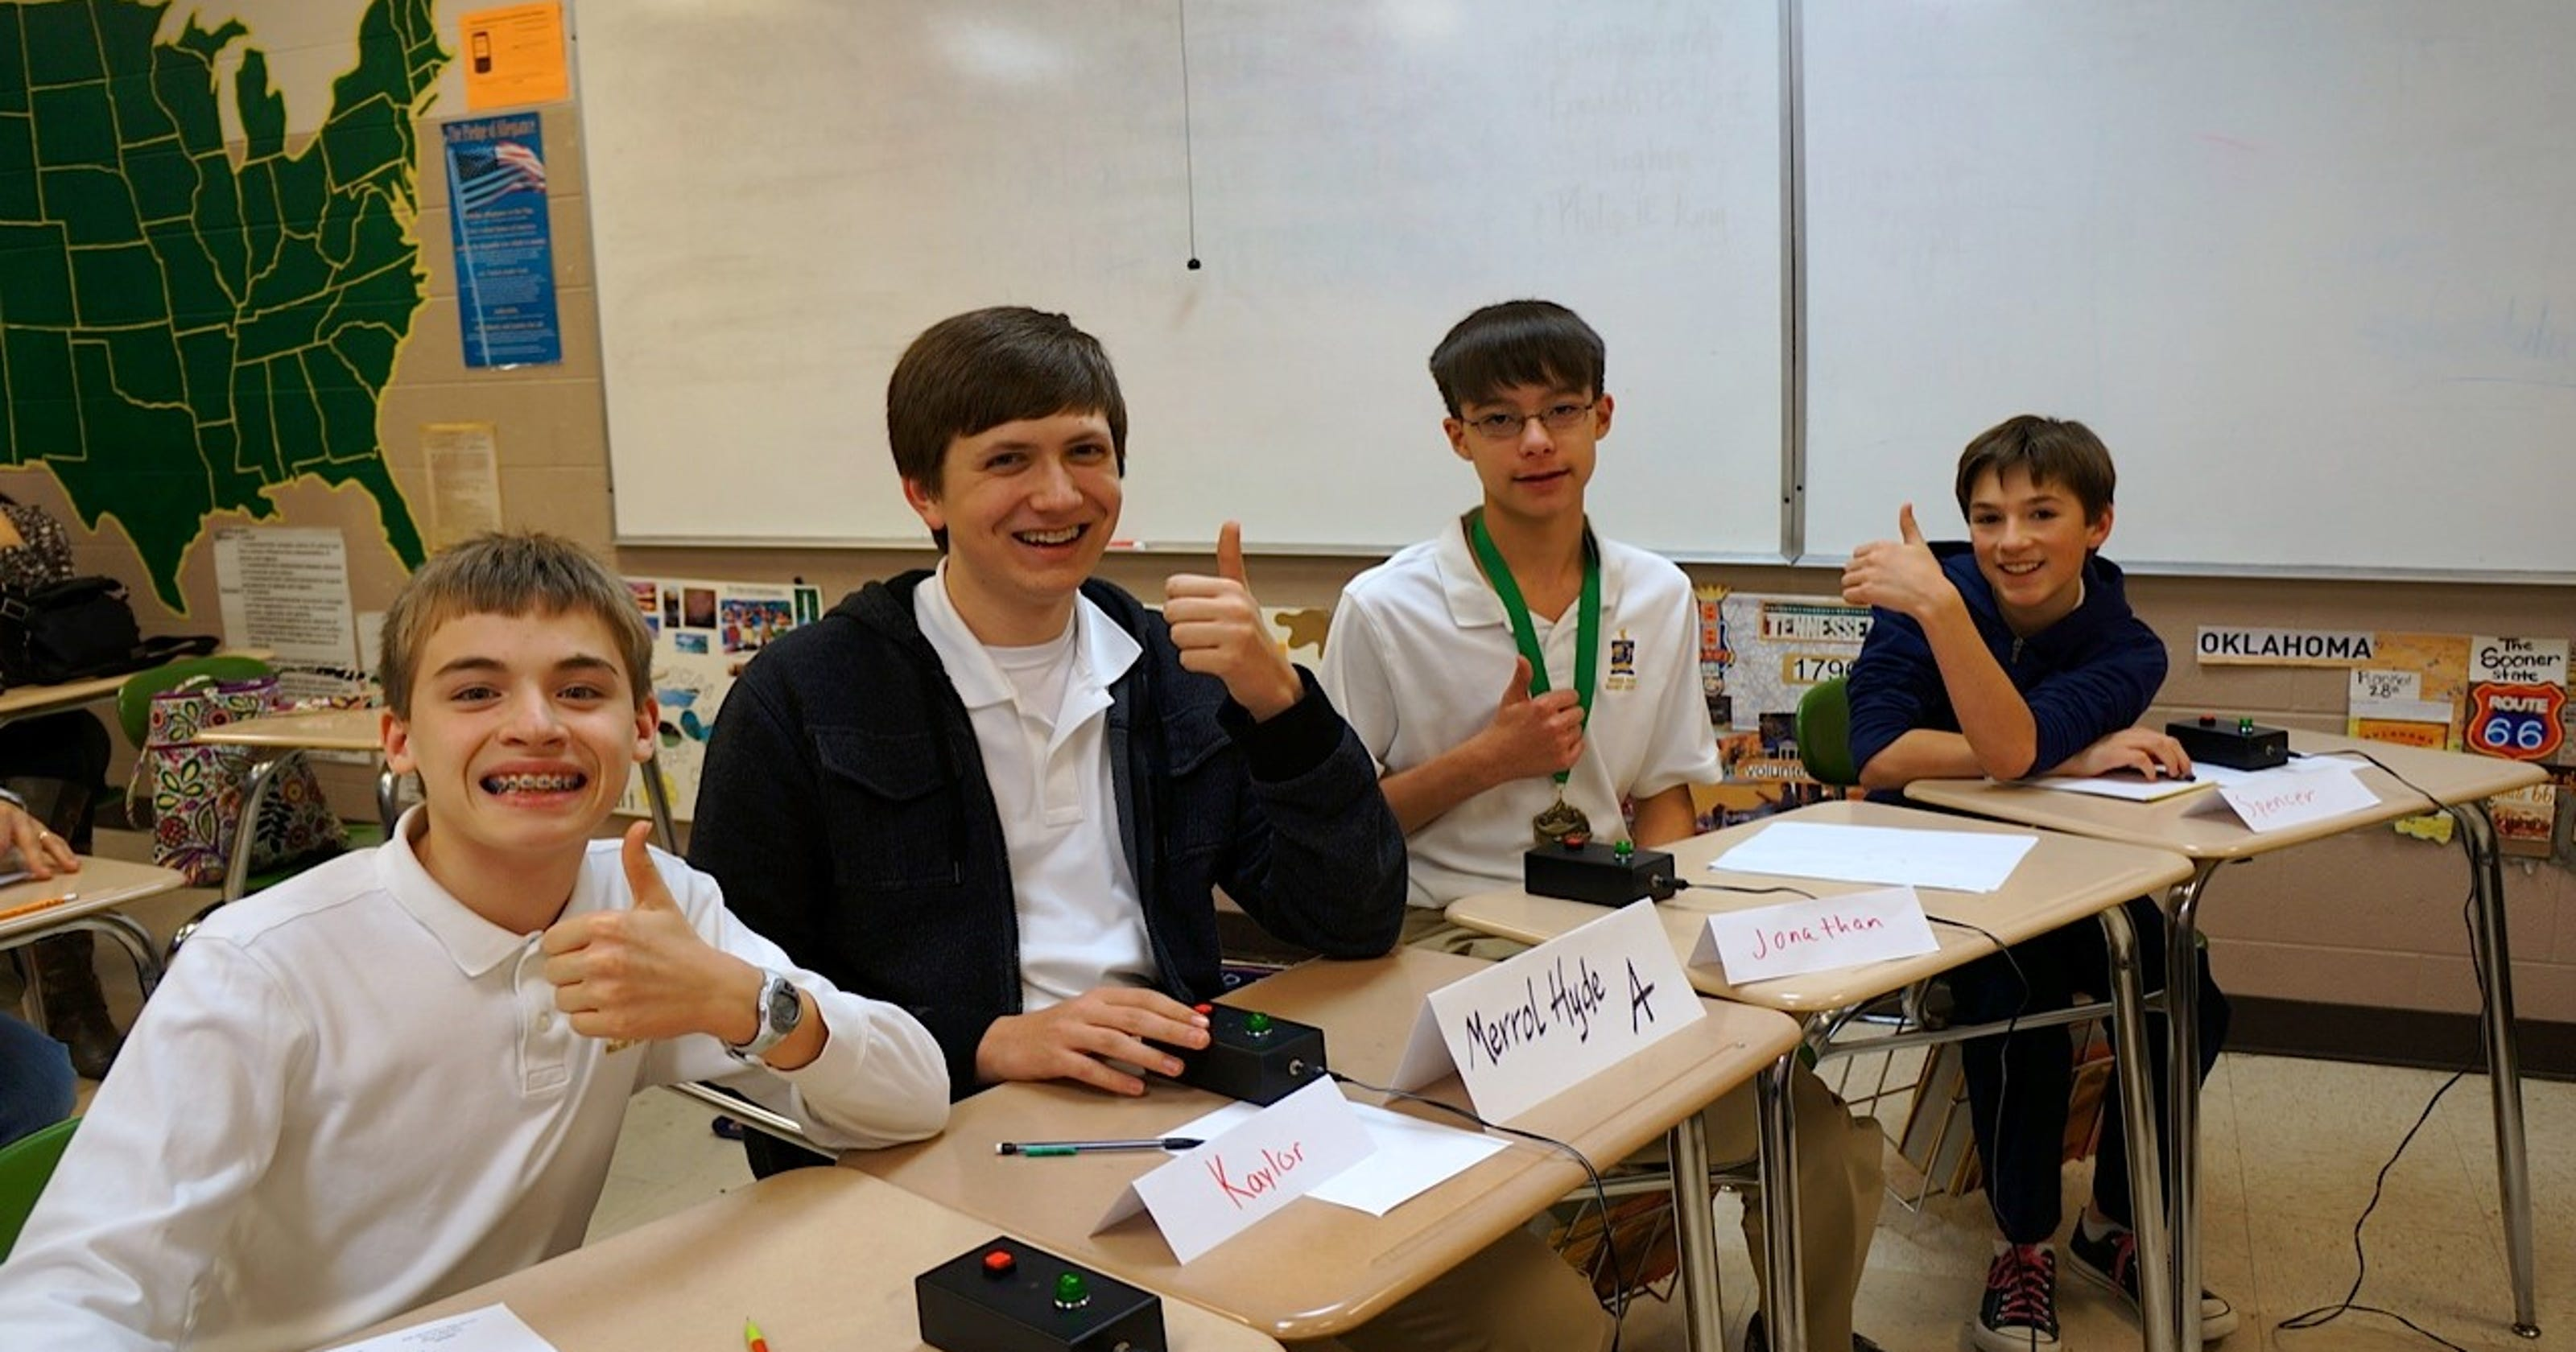 Merrol Hyde takes second place at quiz bowl